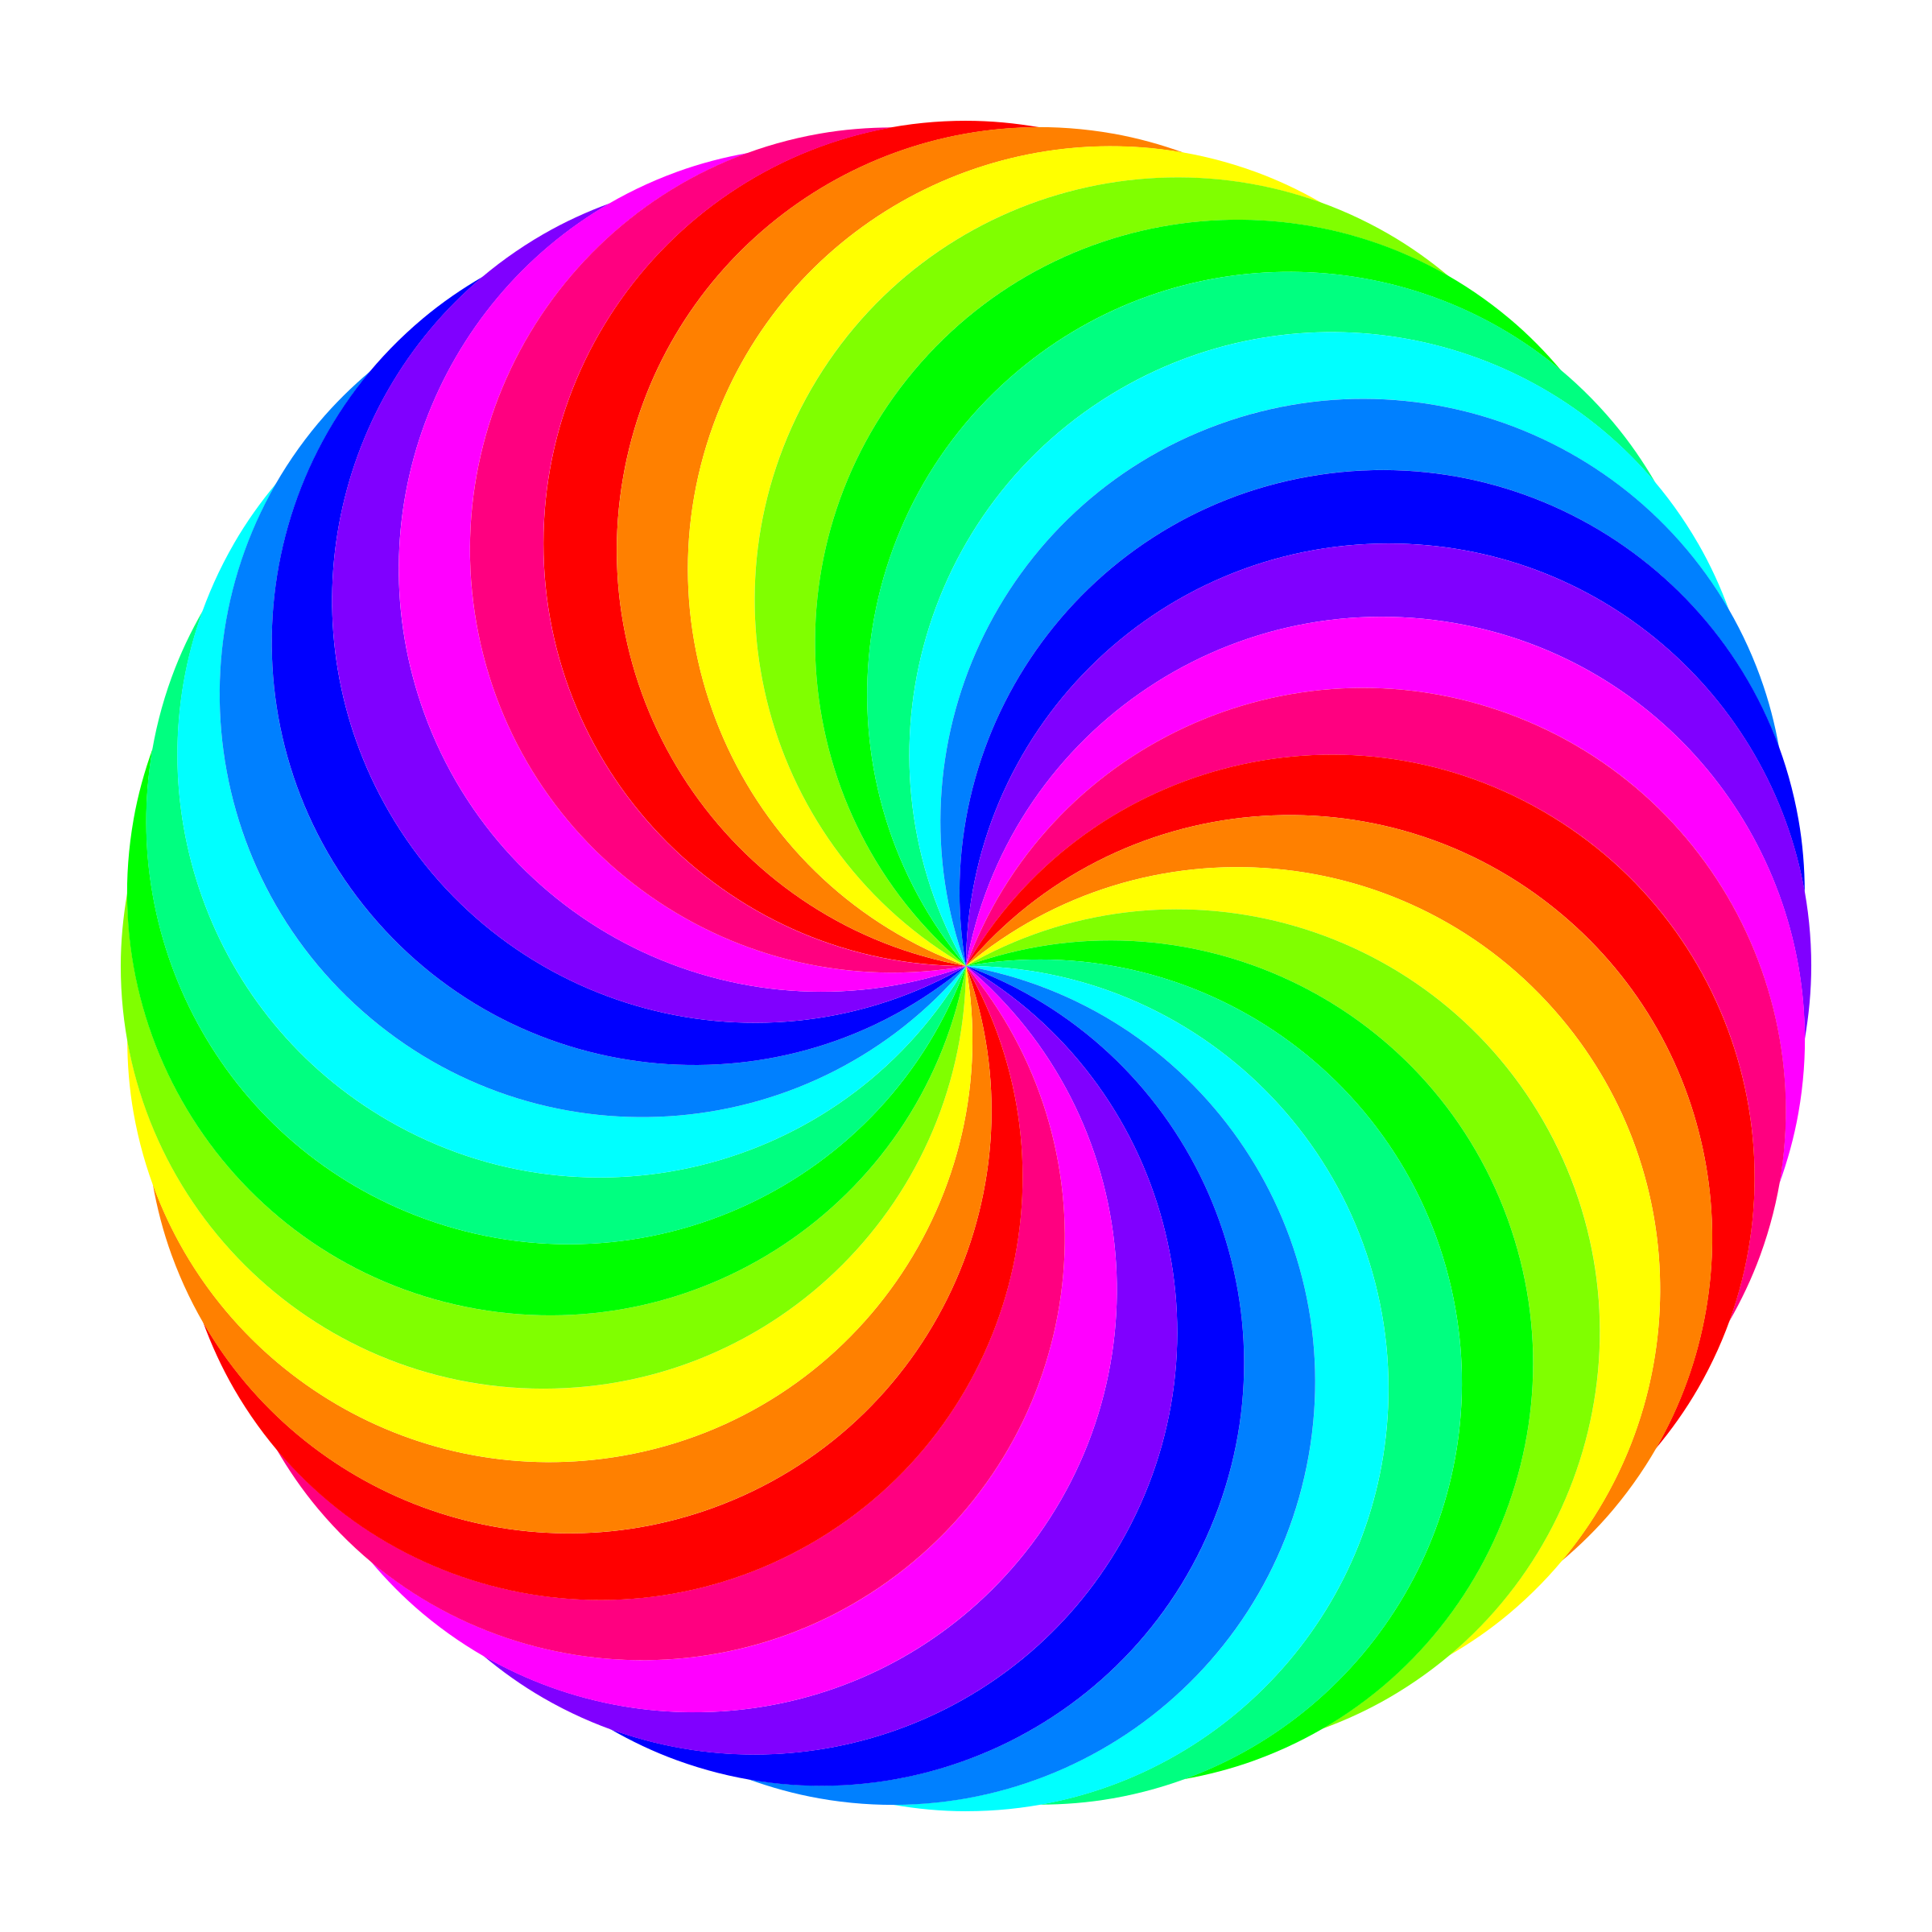 Clipart rainbow smiley face. Circle swirl color big